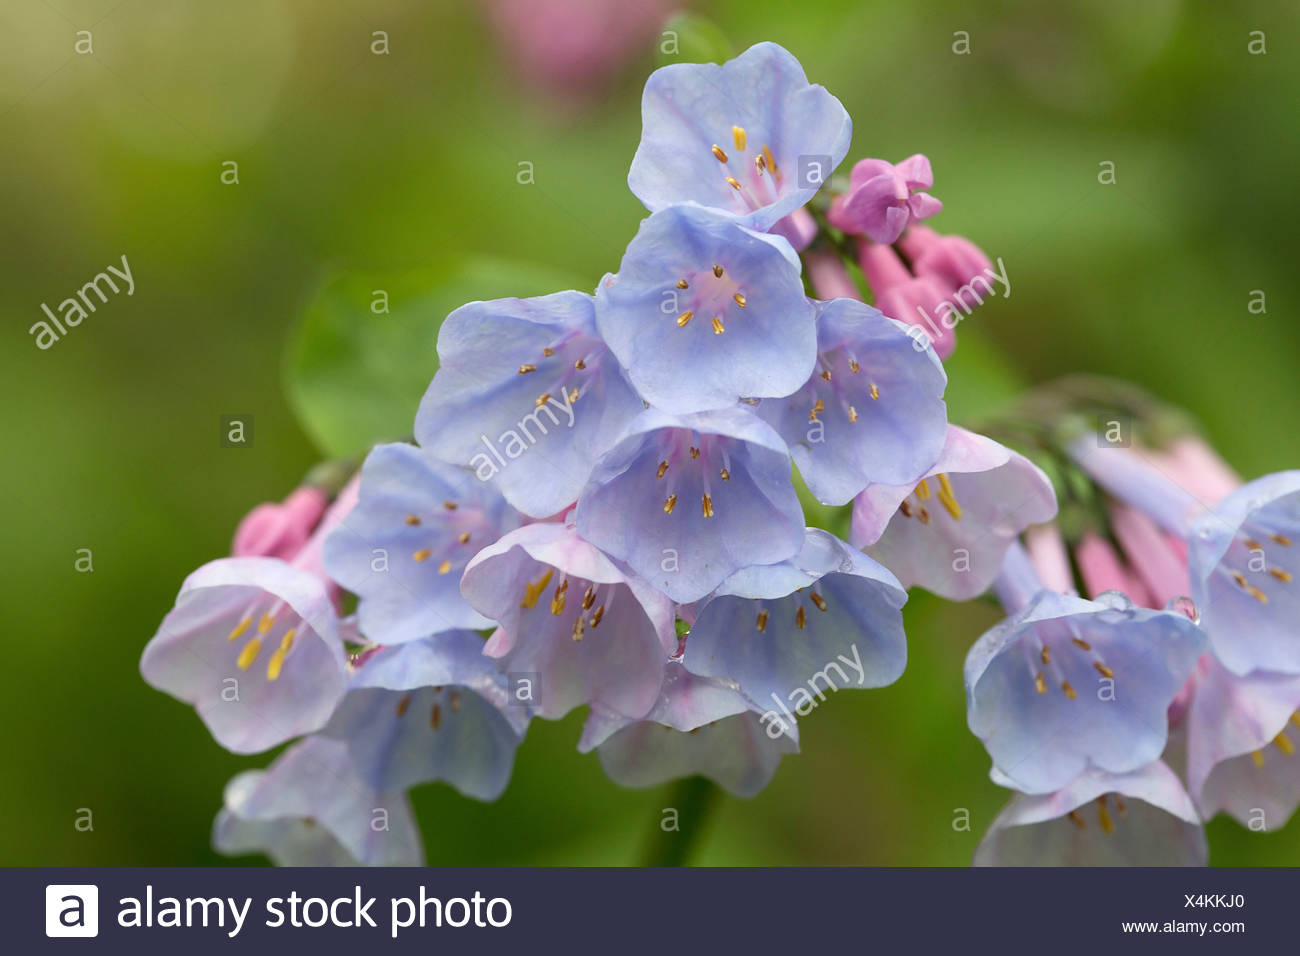 Virginia Bluebell, Mertensia virginica. Close view of flowerhead with cluster of funnel shaped, pale blue flowers. - Stock Image